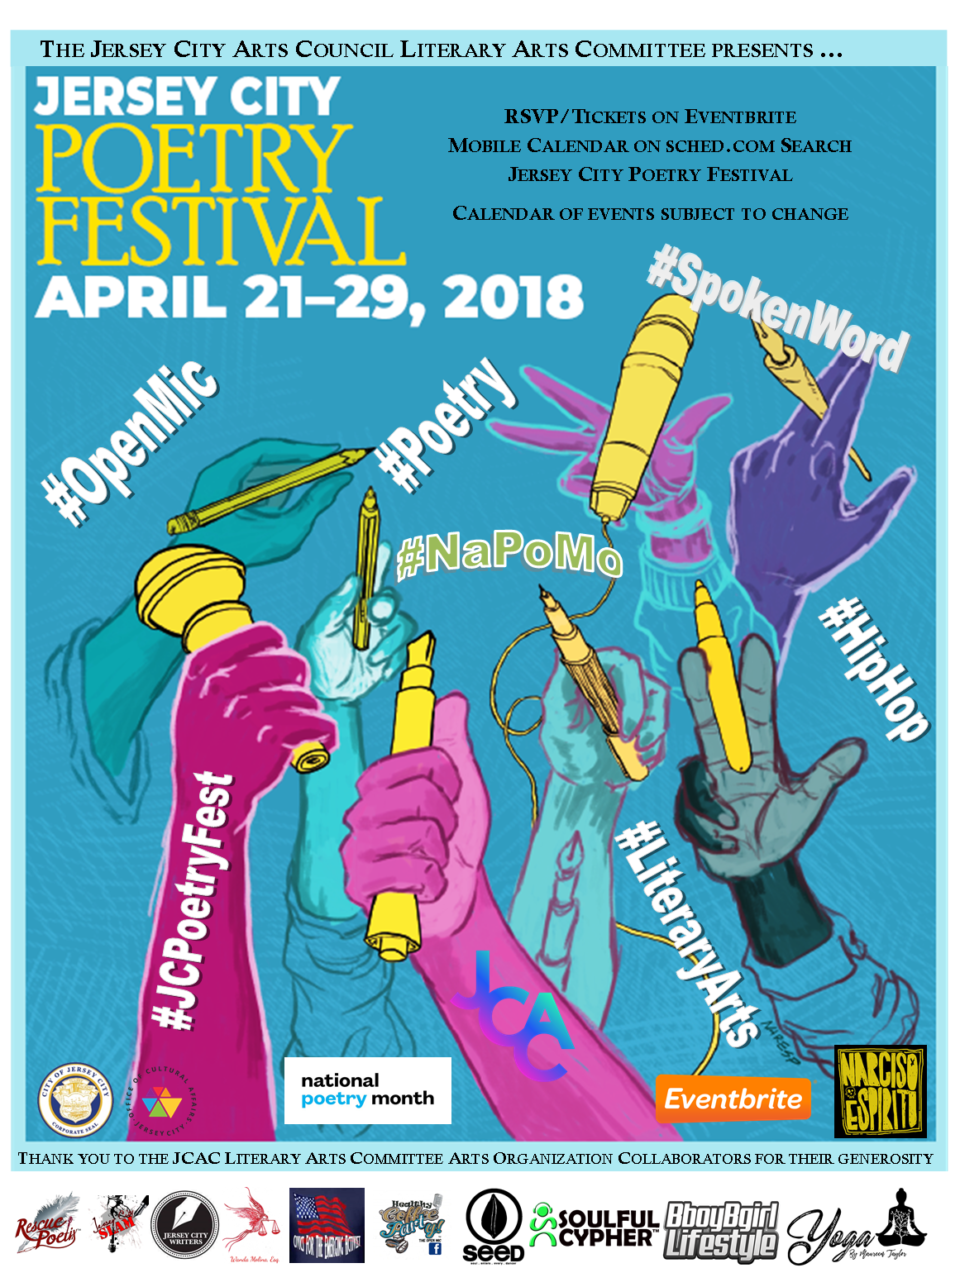 Jersey City Poetry Festival